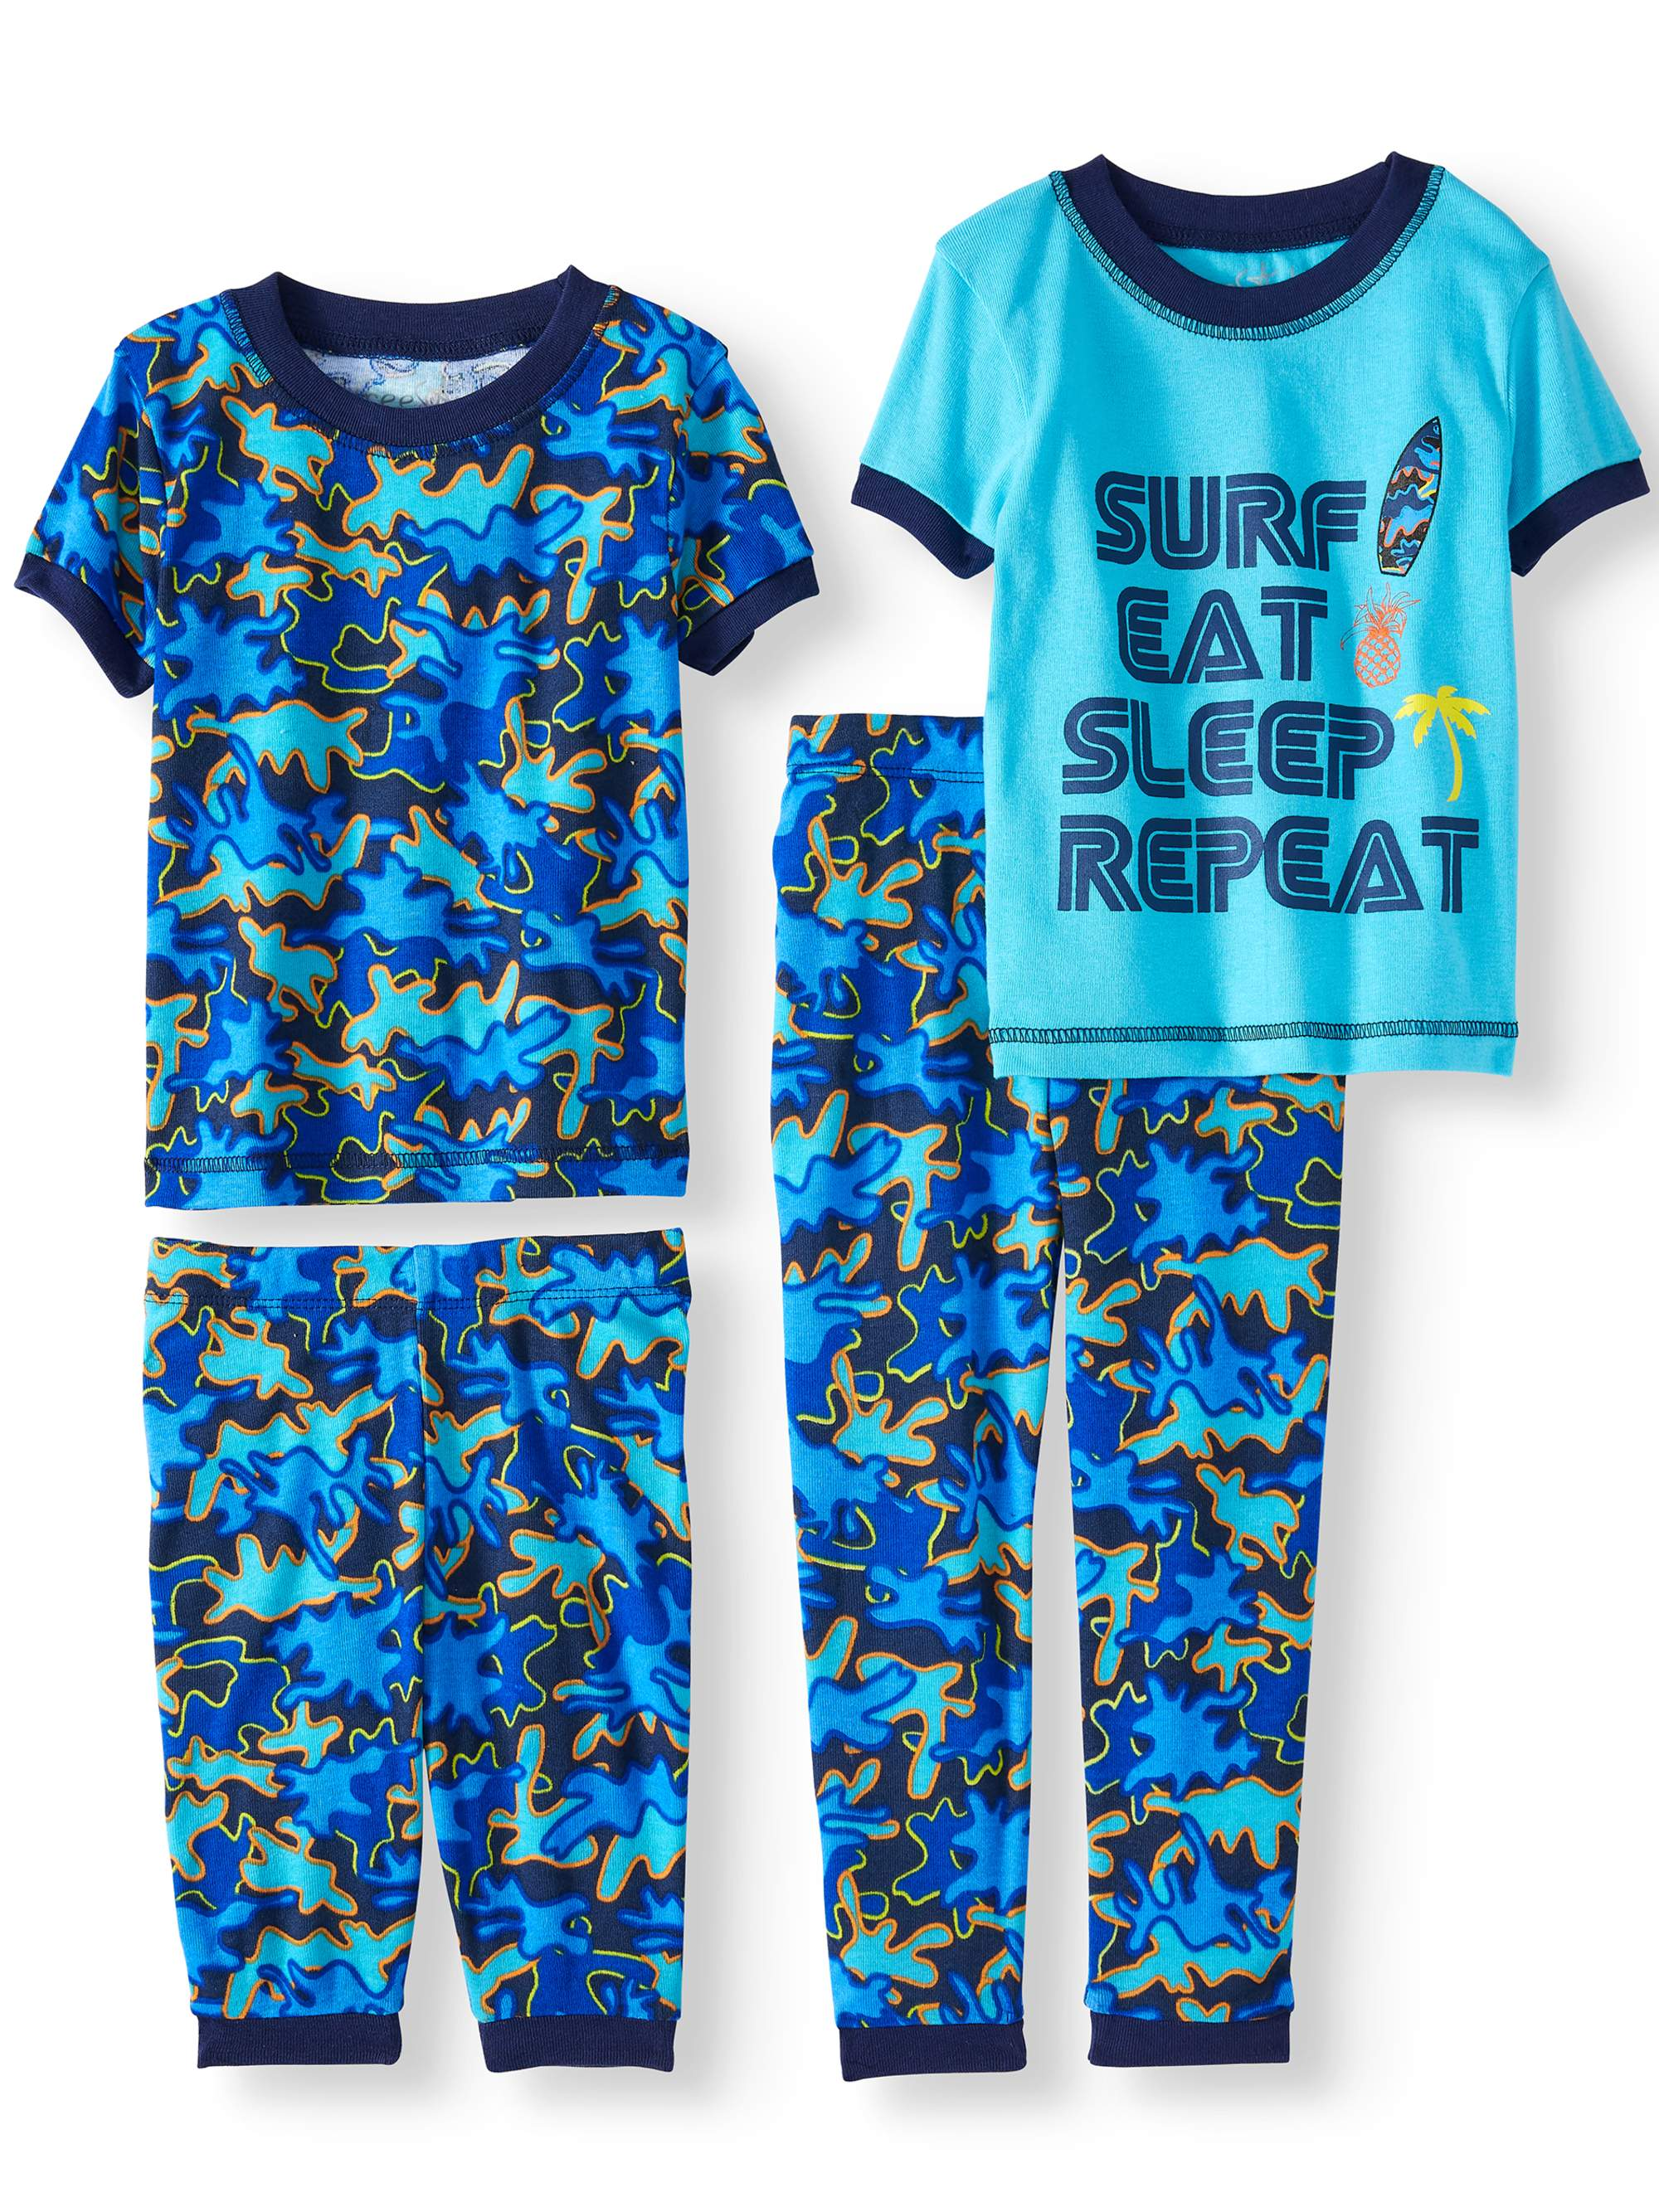 Boys' Surf Eat Sleep Repeat 4 Piece Pajama Sleep Set (Little Boy & Big Boy)